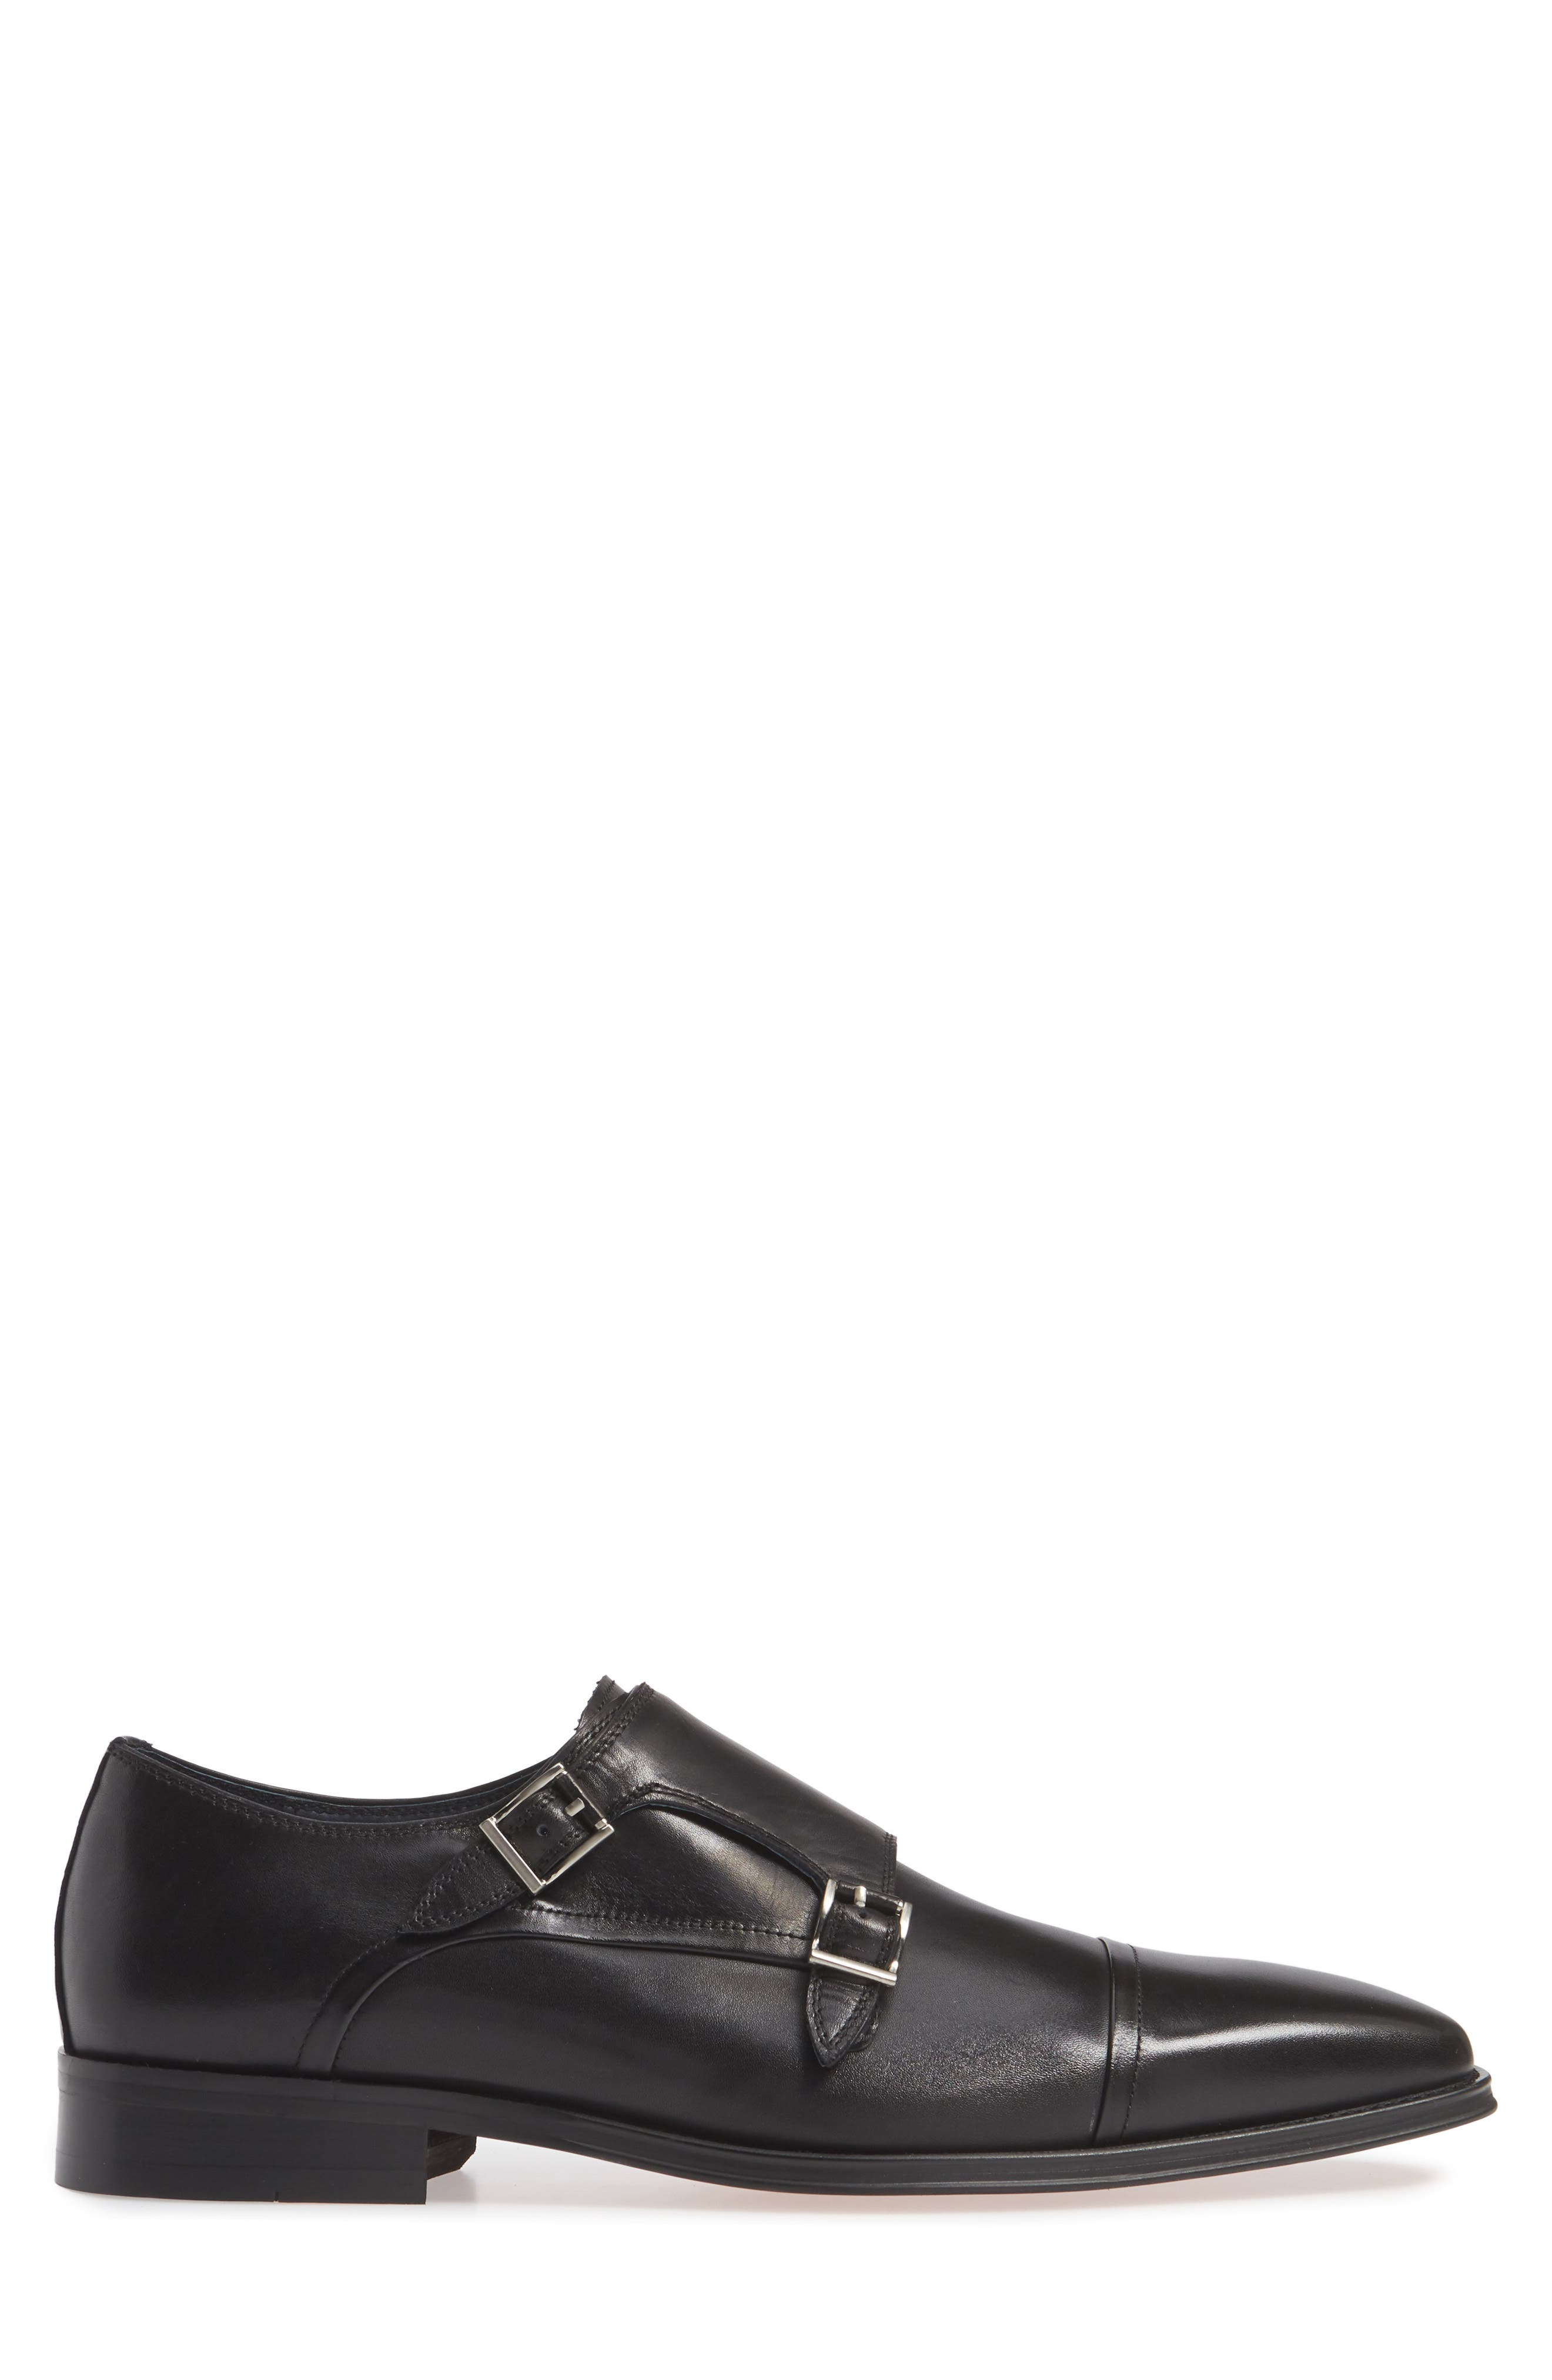 Mario Double Monk Strap Shoe,                             Alternate thumbnail 3, color,                             BLACK LEATHER